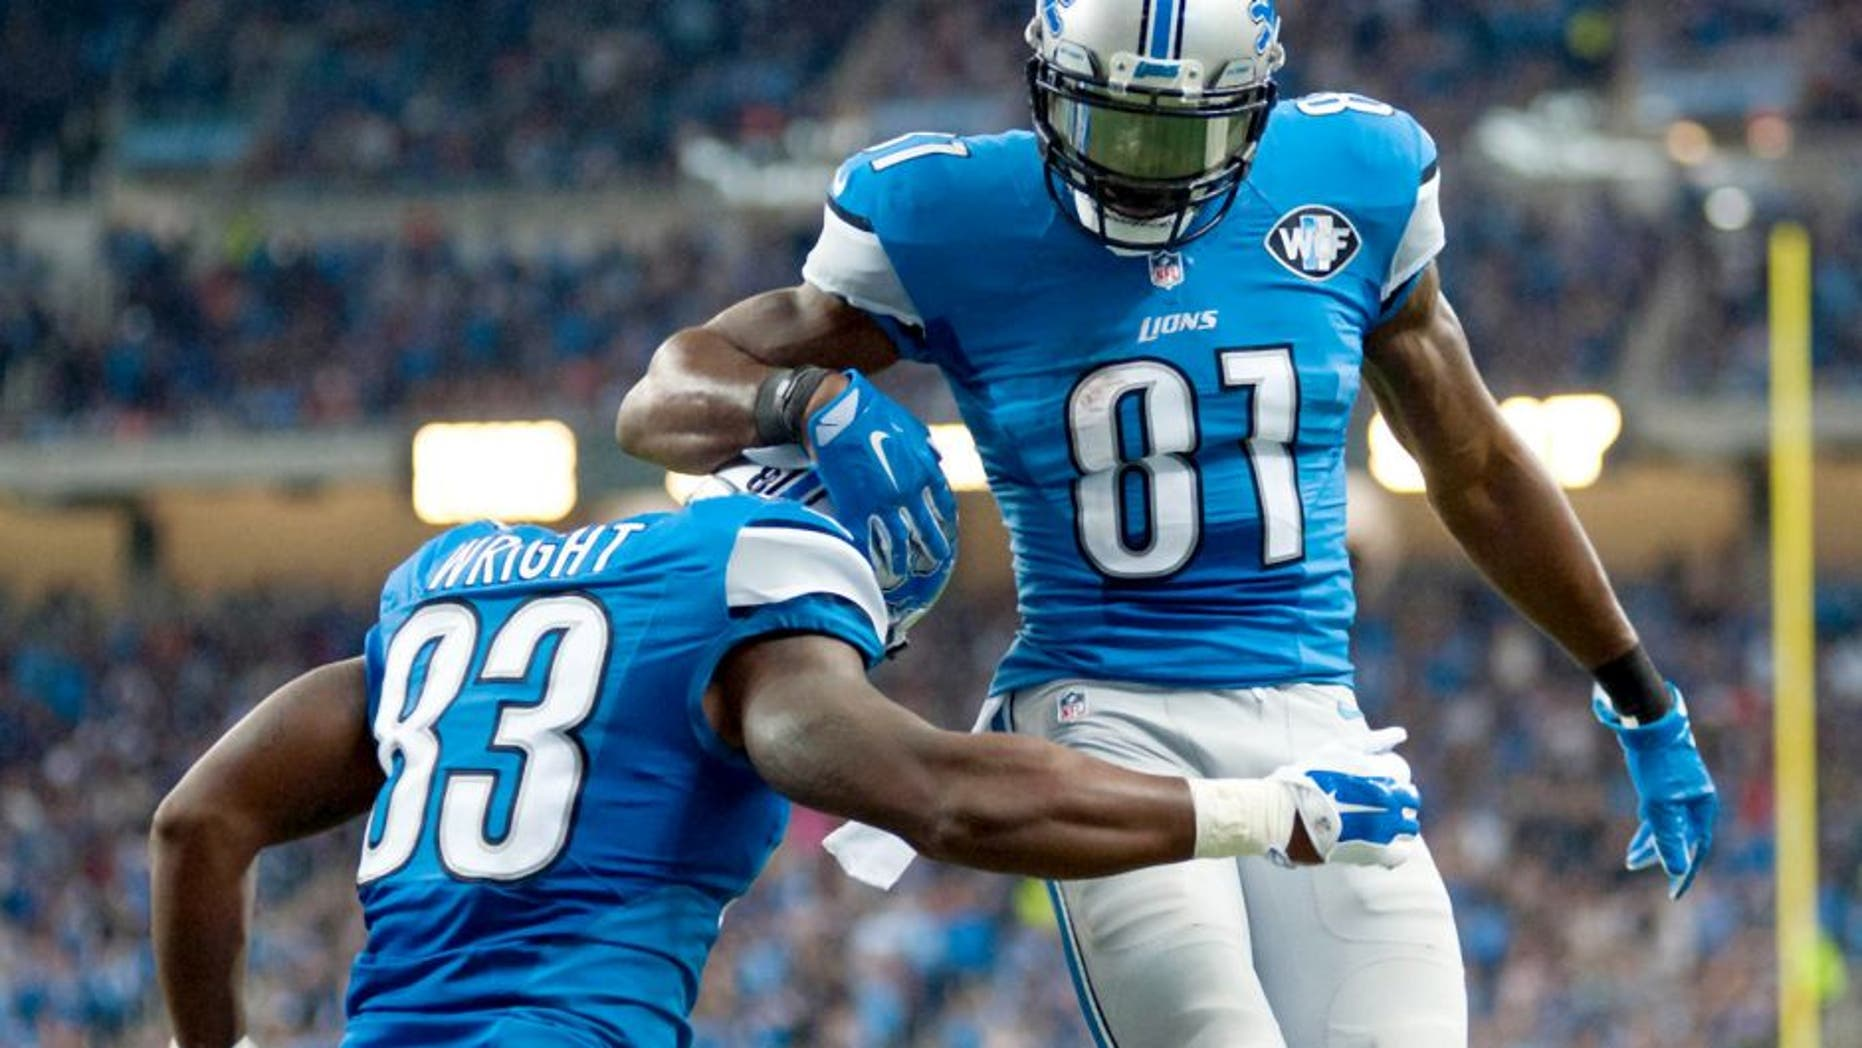 Oct 18, 2015; Detroit, MI, USA; Detroit Lions tight end Timothy Wright (83) celebrates his touchdown with wide receiver Calvin Johnson (81) during the second quarter against the Chicago Bears at Ford Field. Mandatory Credit: Tim Fuller-USA TODAY Sports